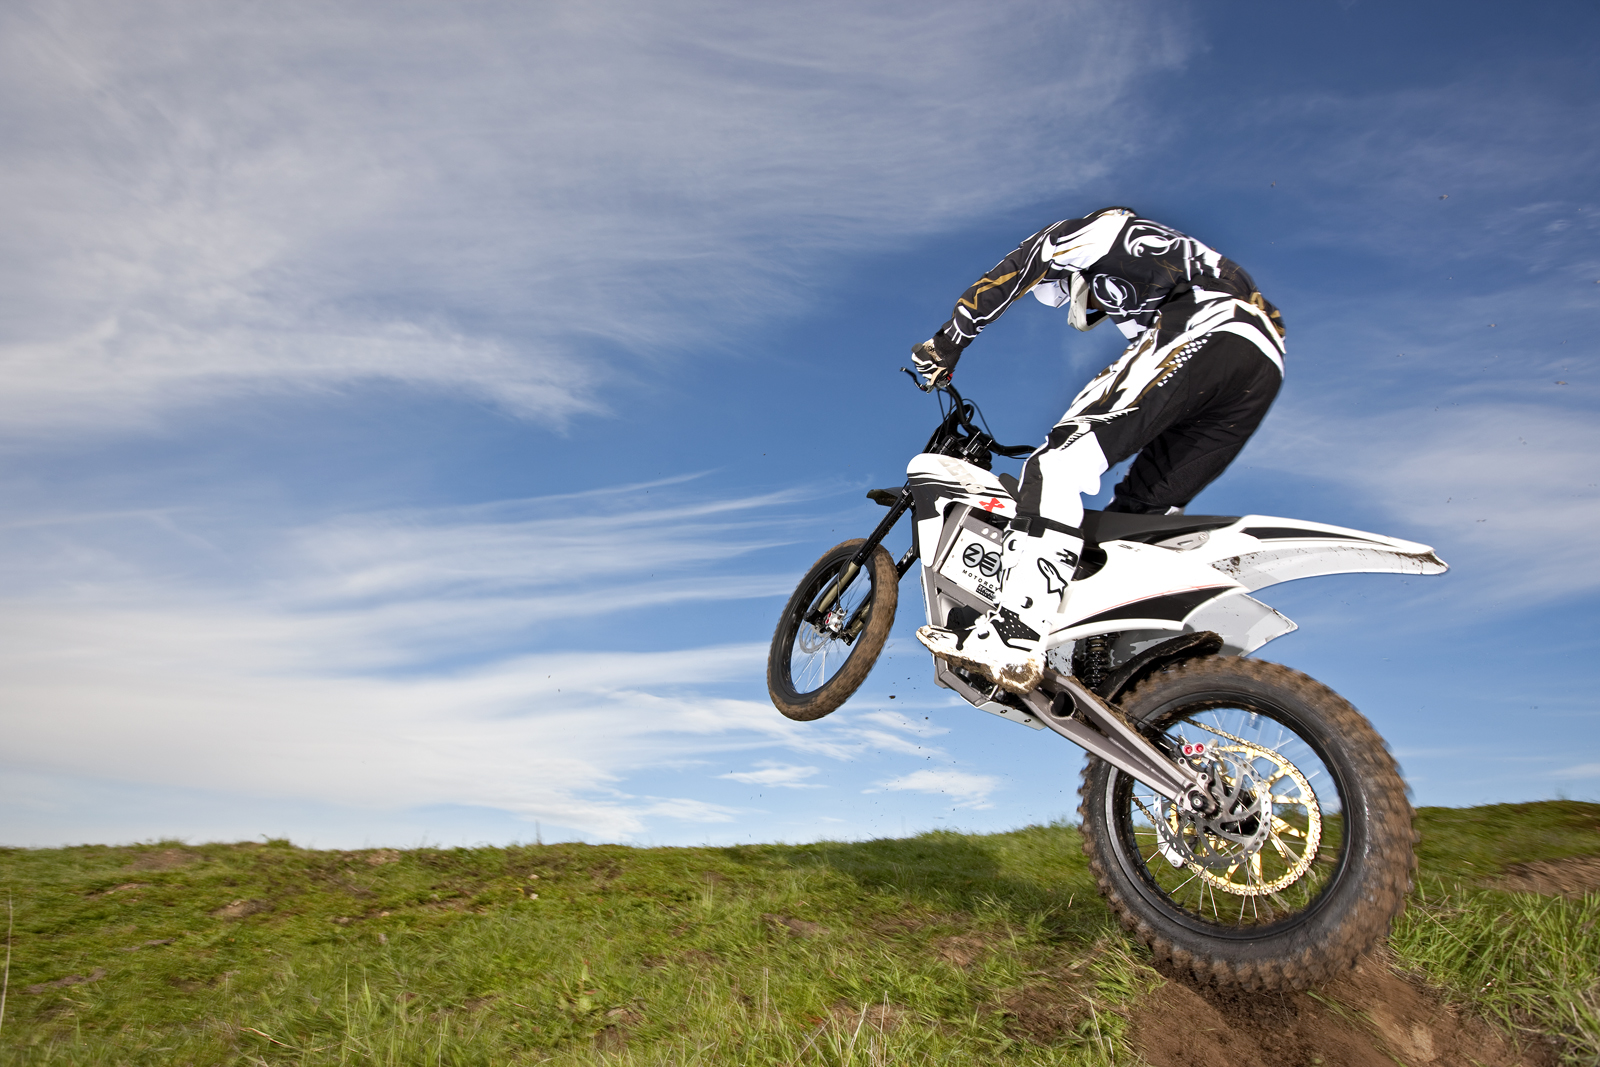 '.2010 Zero X Electric Motorcycle: Zaca Station - Jump Onto Grass.'